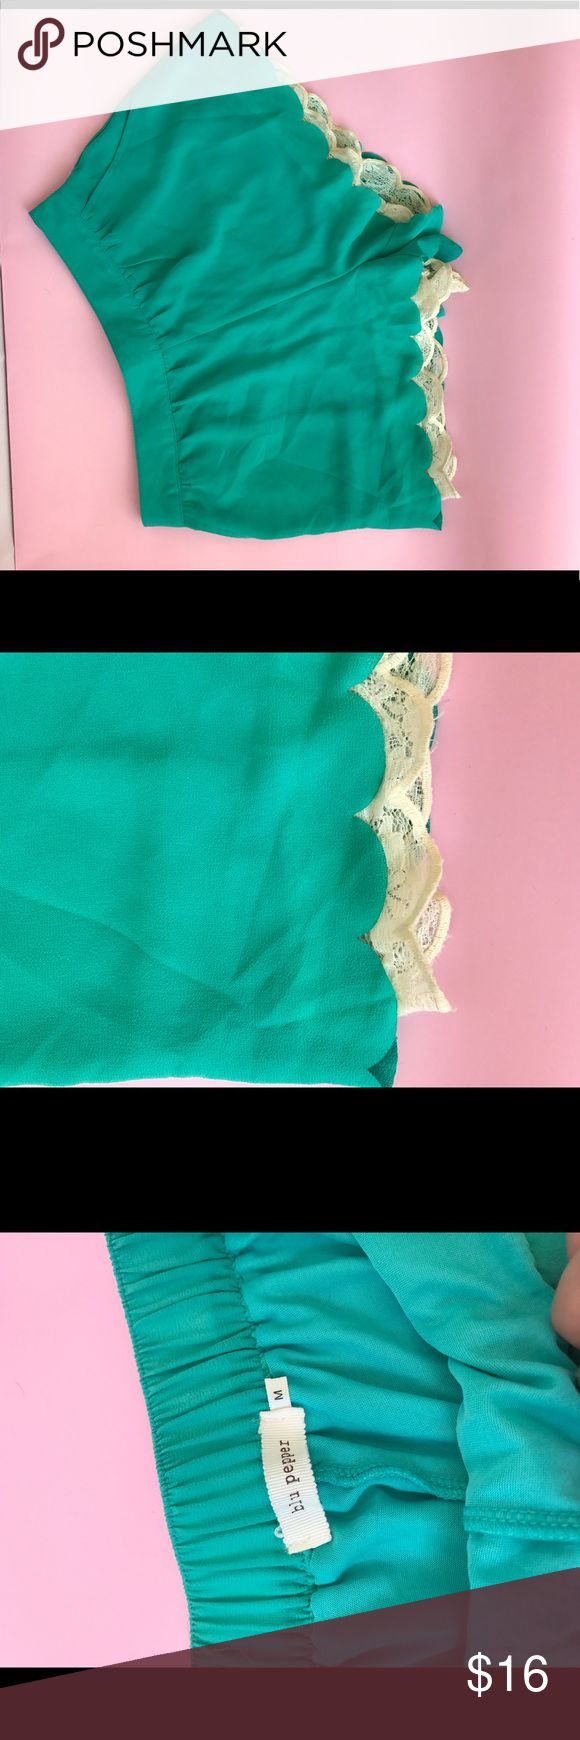 Turquoise shorts Turquoise shorts with lace detail on bottom from Francesca's size medium Blu Pepper Shorts